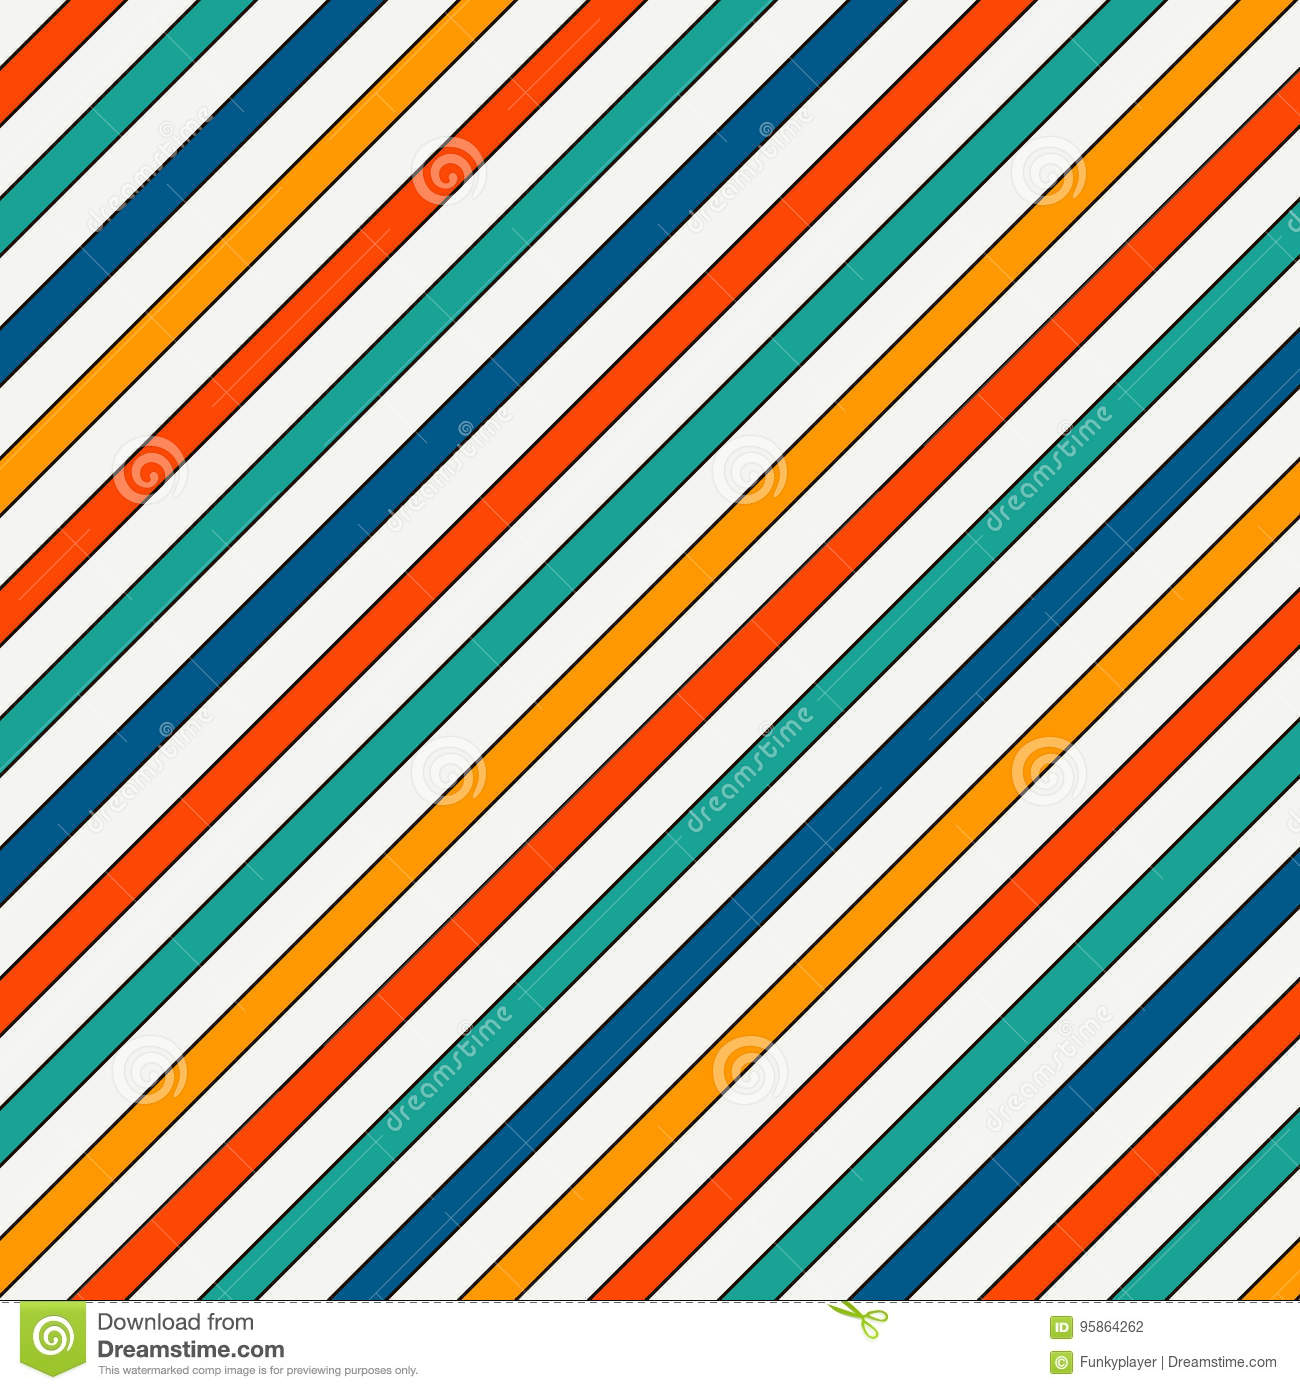 0079d8f5 Vivid colors diagonal stripes abstract background. Thin slanting line  wallpaper. Seamless pattern with classic motif.